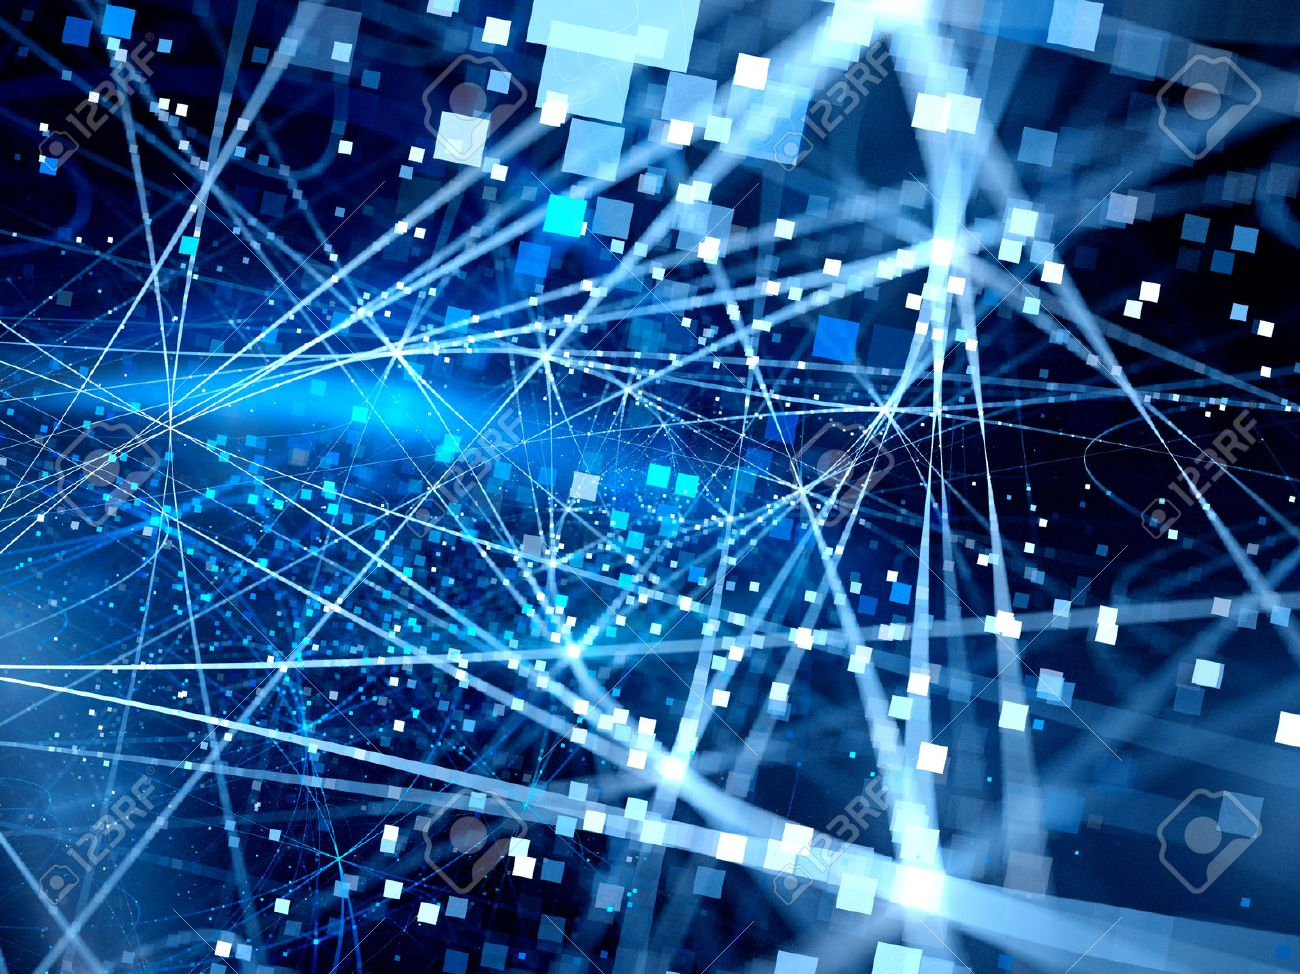 Blue glowing connection lines with particles, new technology, big data, computer generated abstract background - 50417286